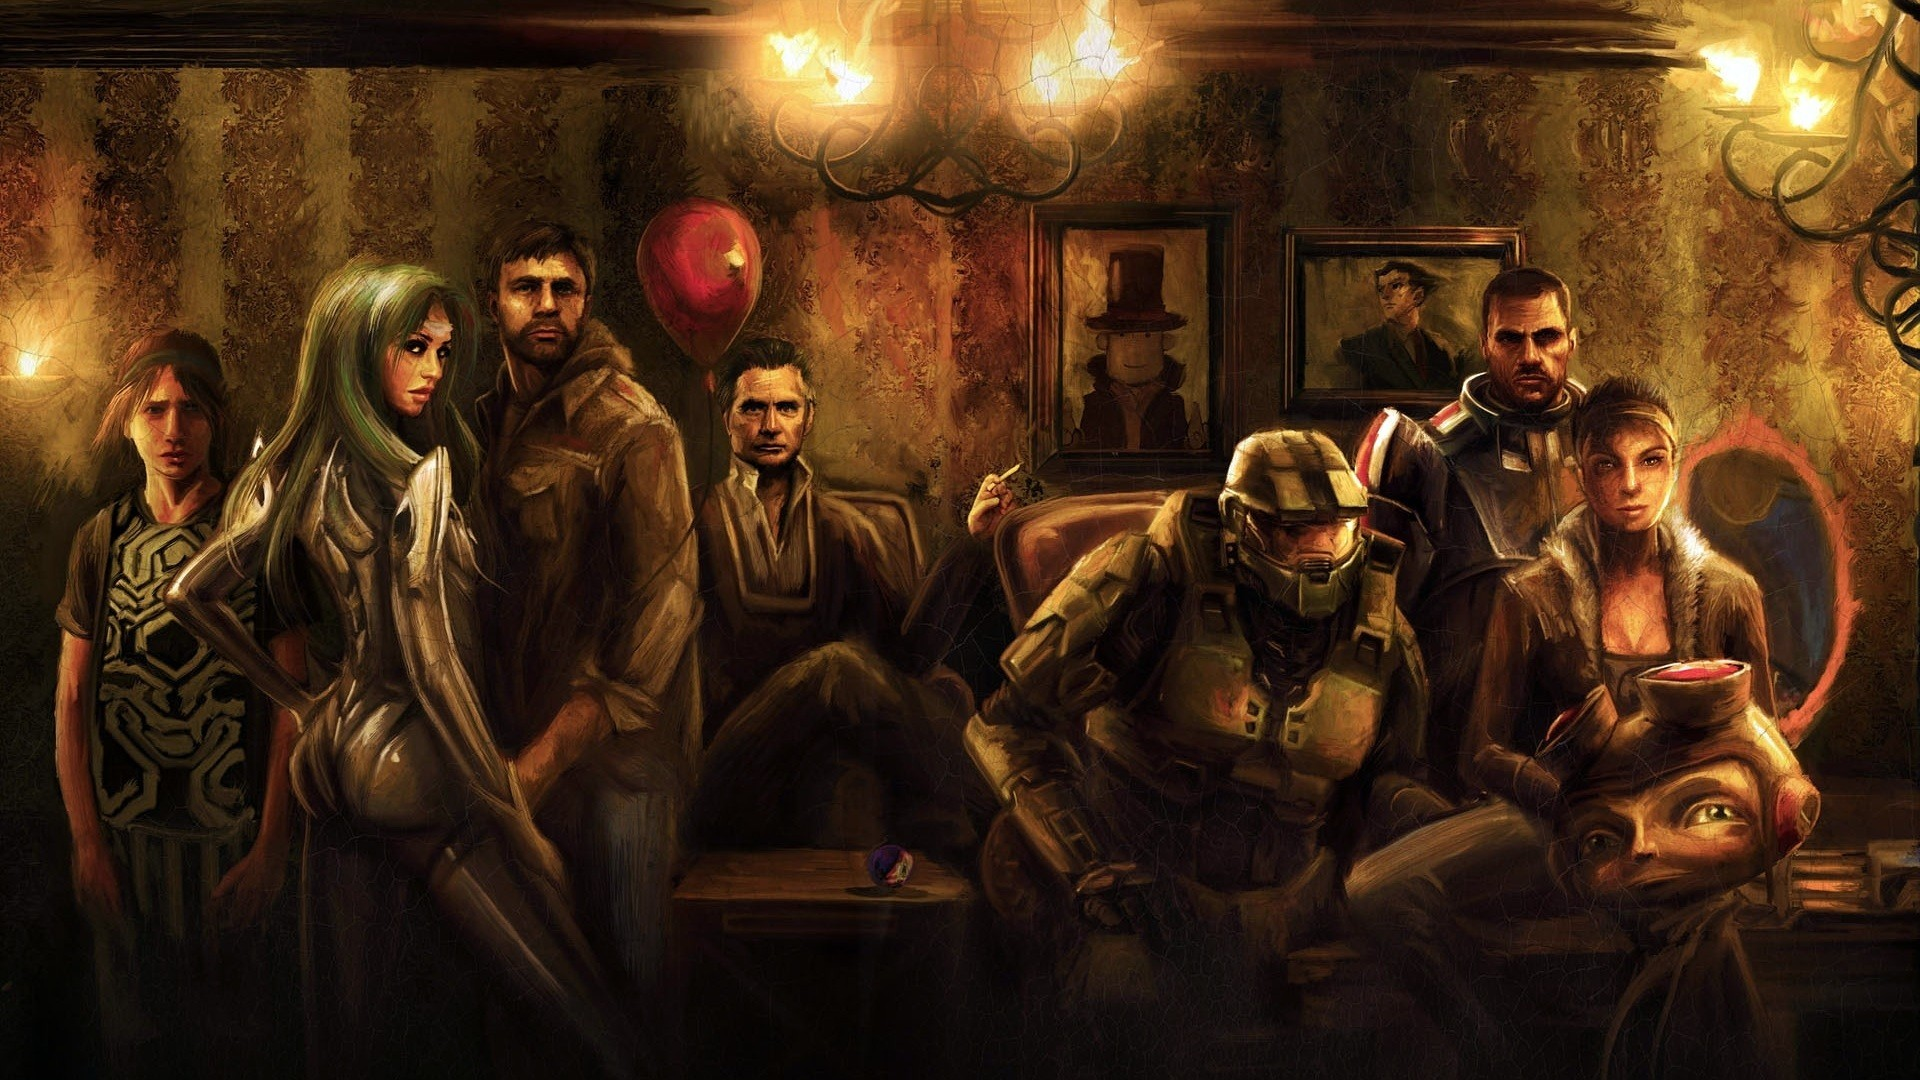 1920x1080  Wallpaper half-life, room, characters, faces, lamps